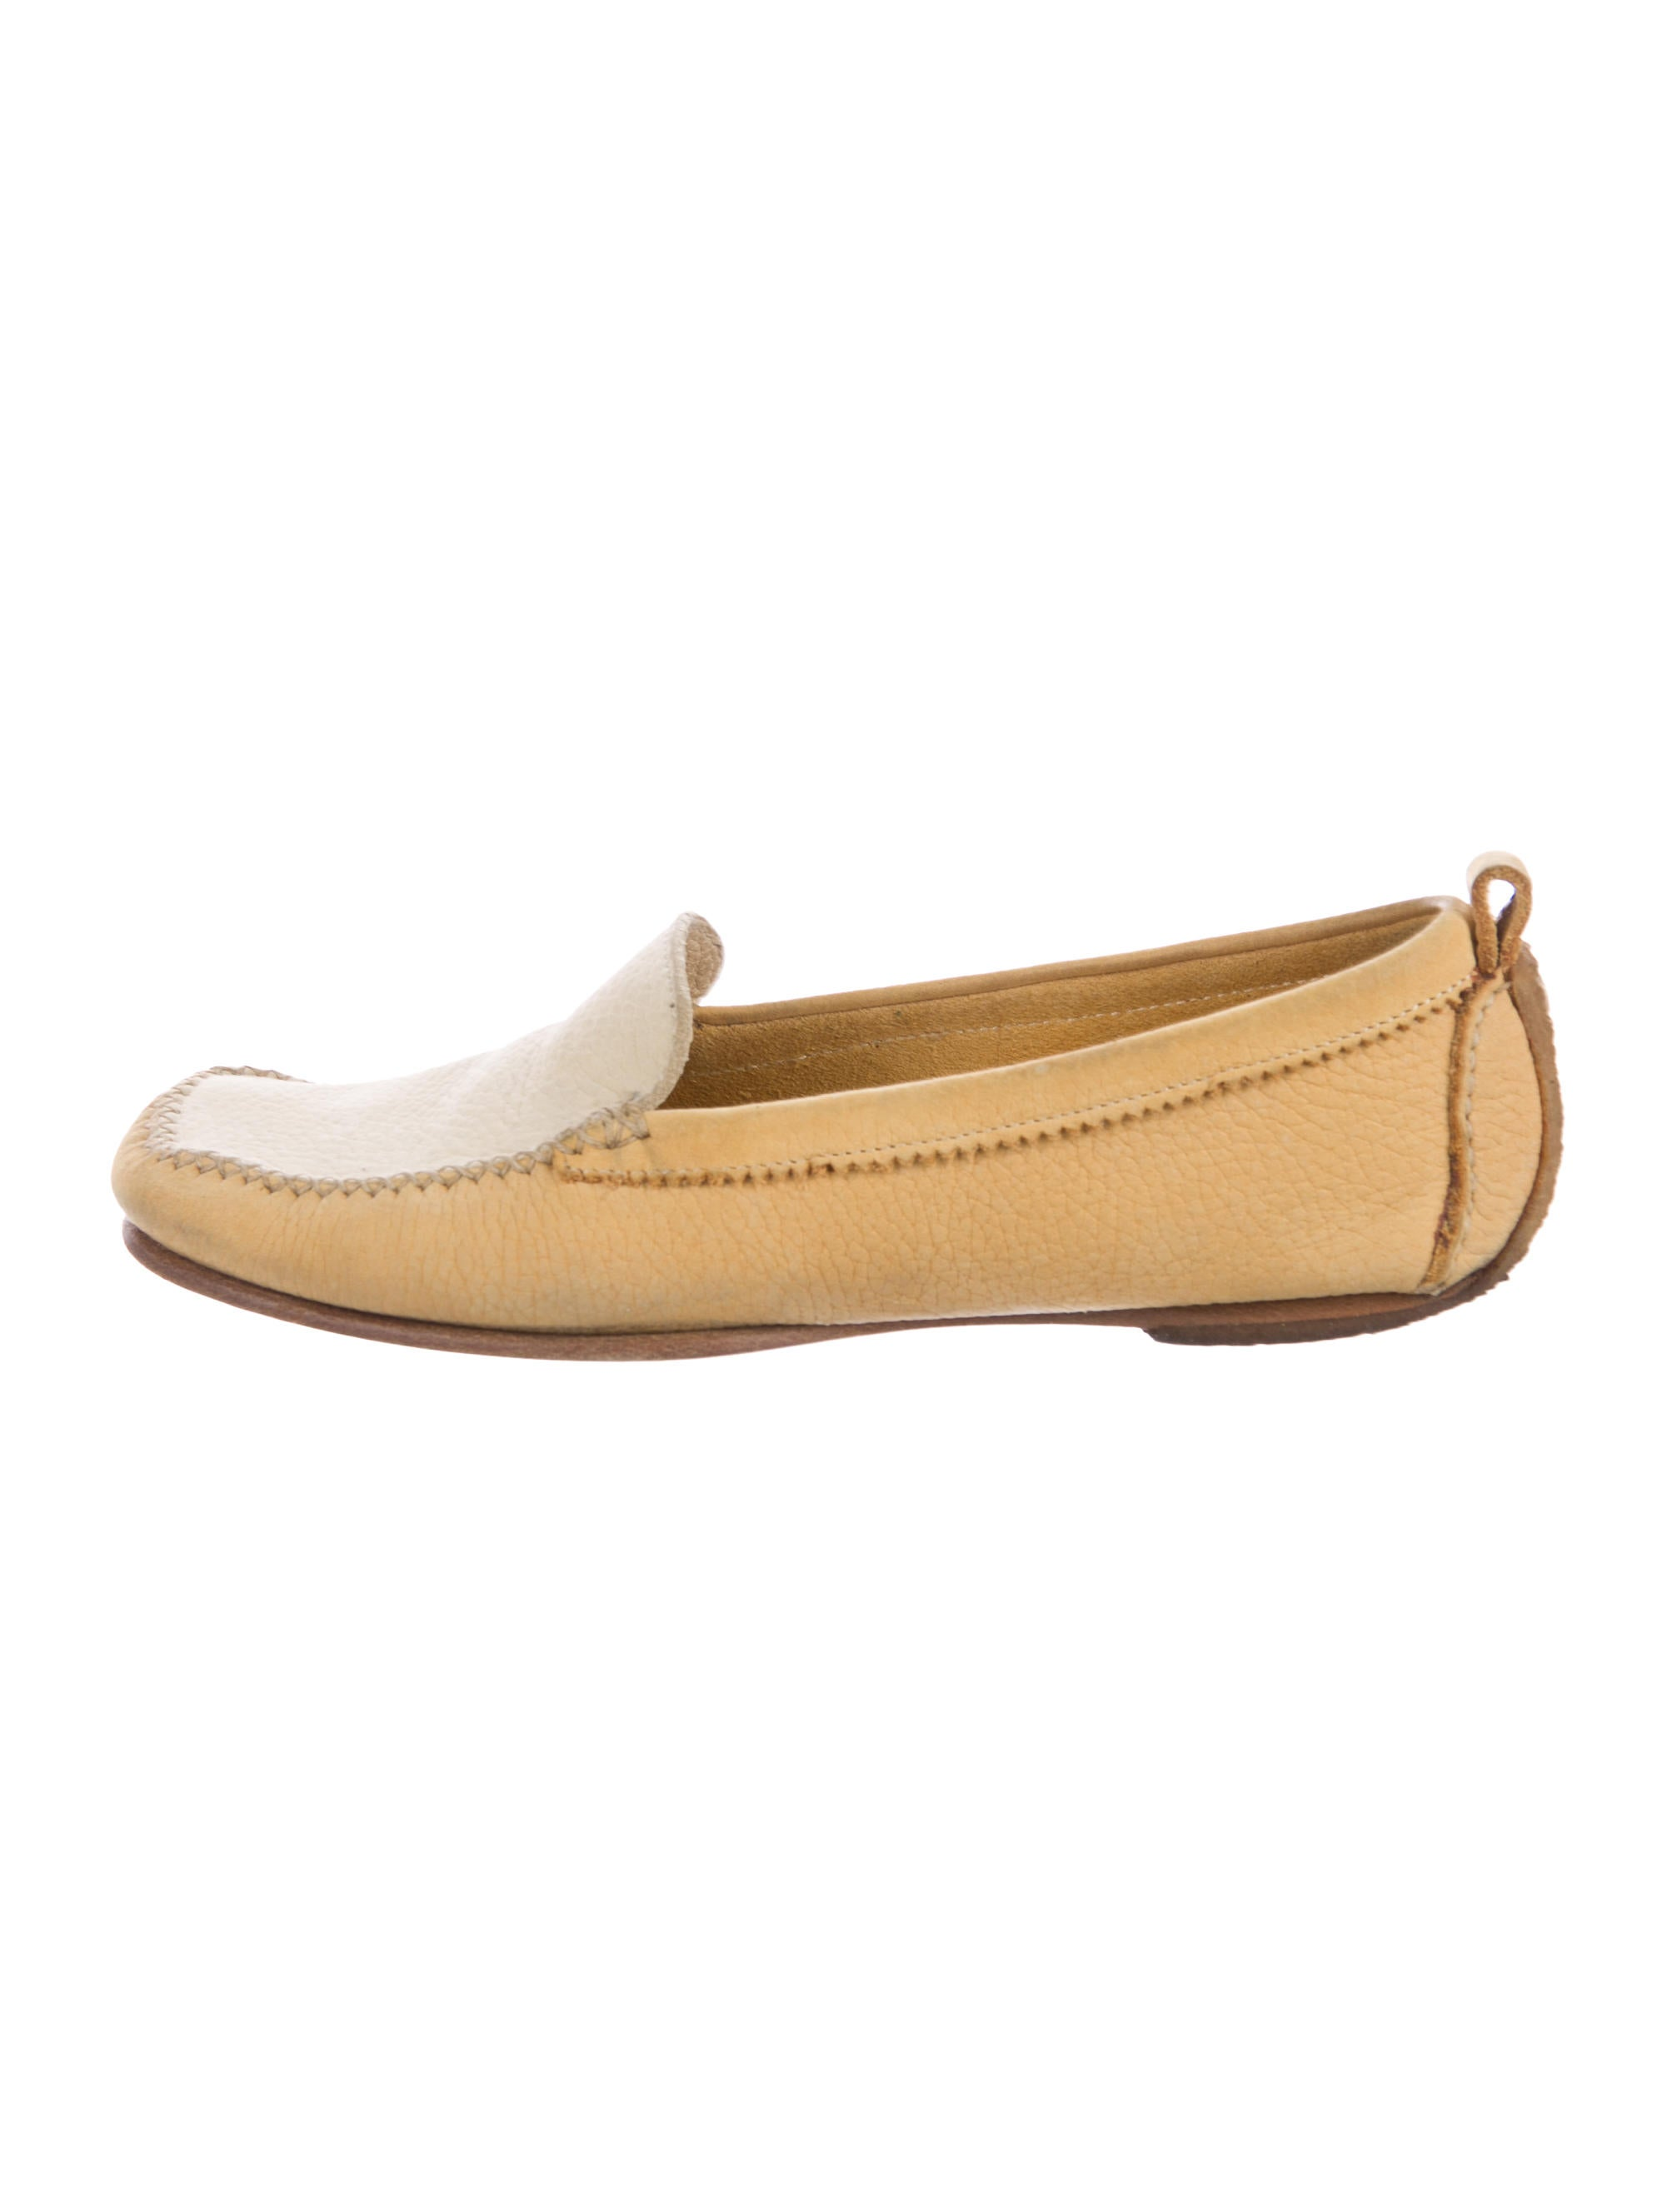 Henry Beguelin Suede Square-Toe Loafers clearance browse clearance fashionable S1ISwinOA